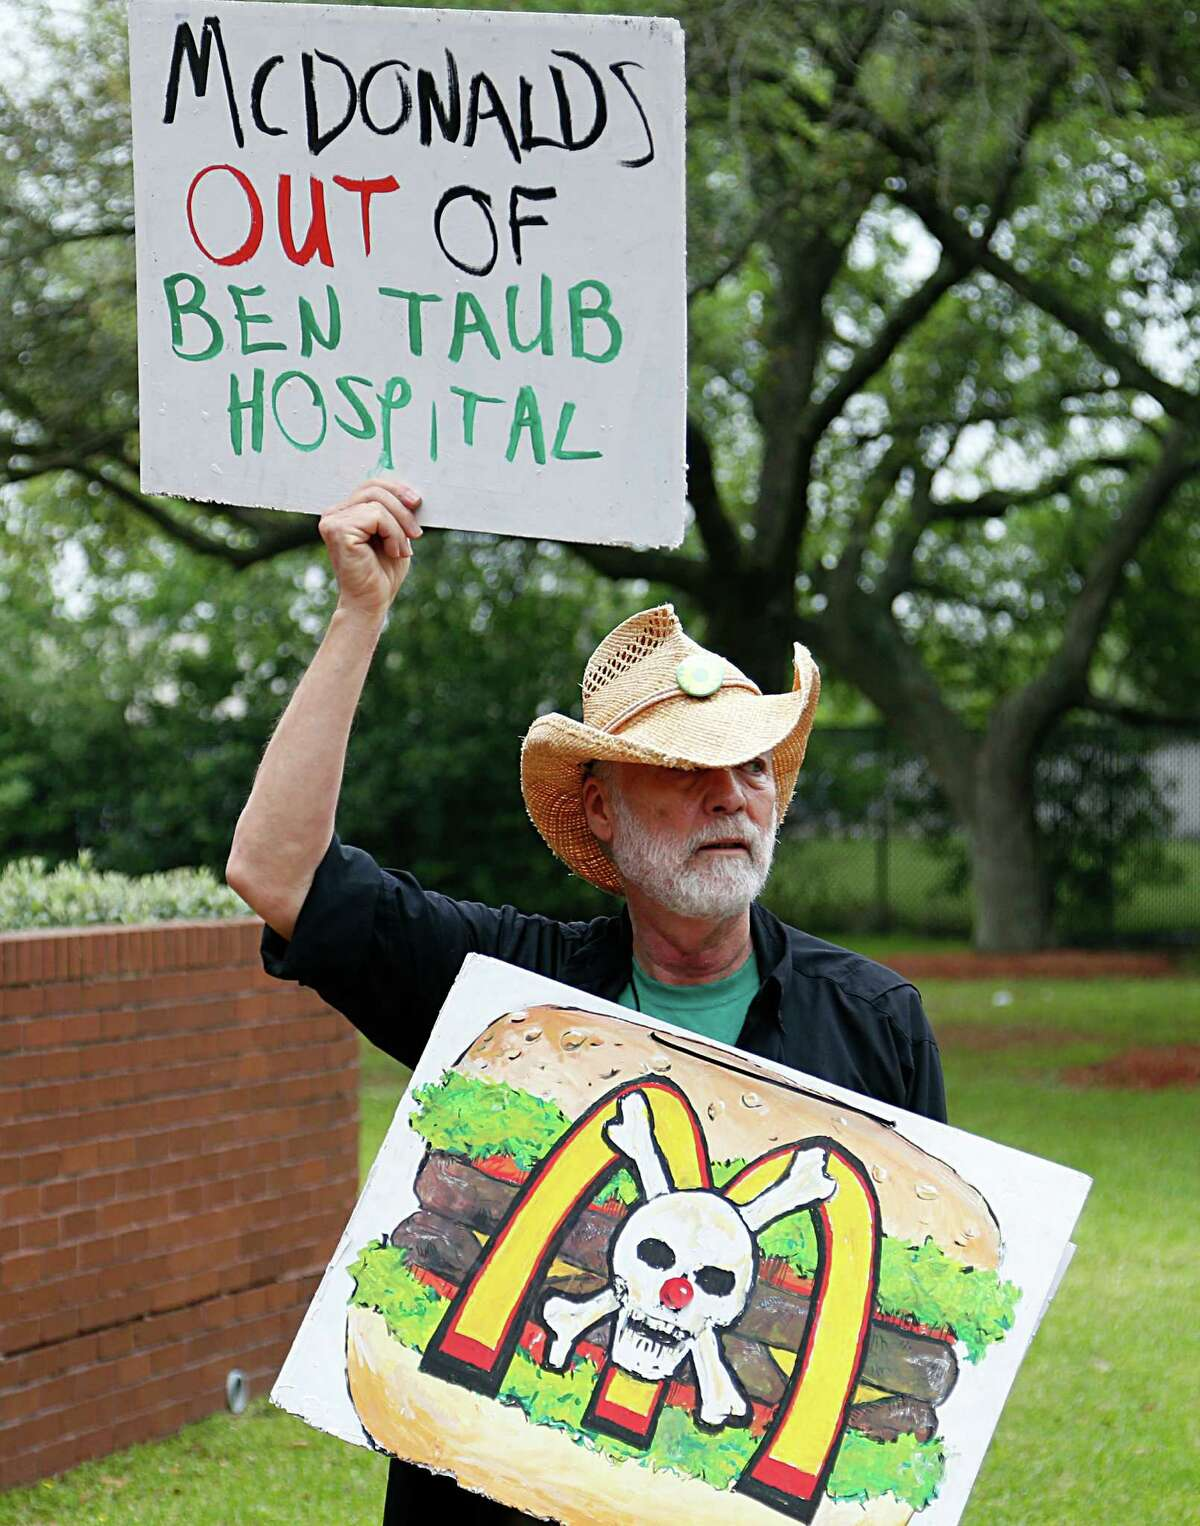 """Value the Meal volunteer Don Cook demonstrates in front of Harris Health System's offices. """"McDonald's has been a good partner, and offers a variety of healthful menu options to our visitors and staff,"""" George Masi of Harris Health System said in a statement."""